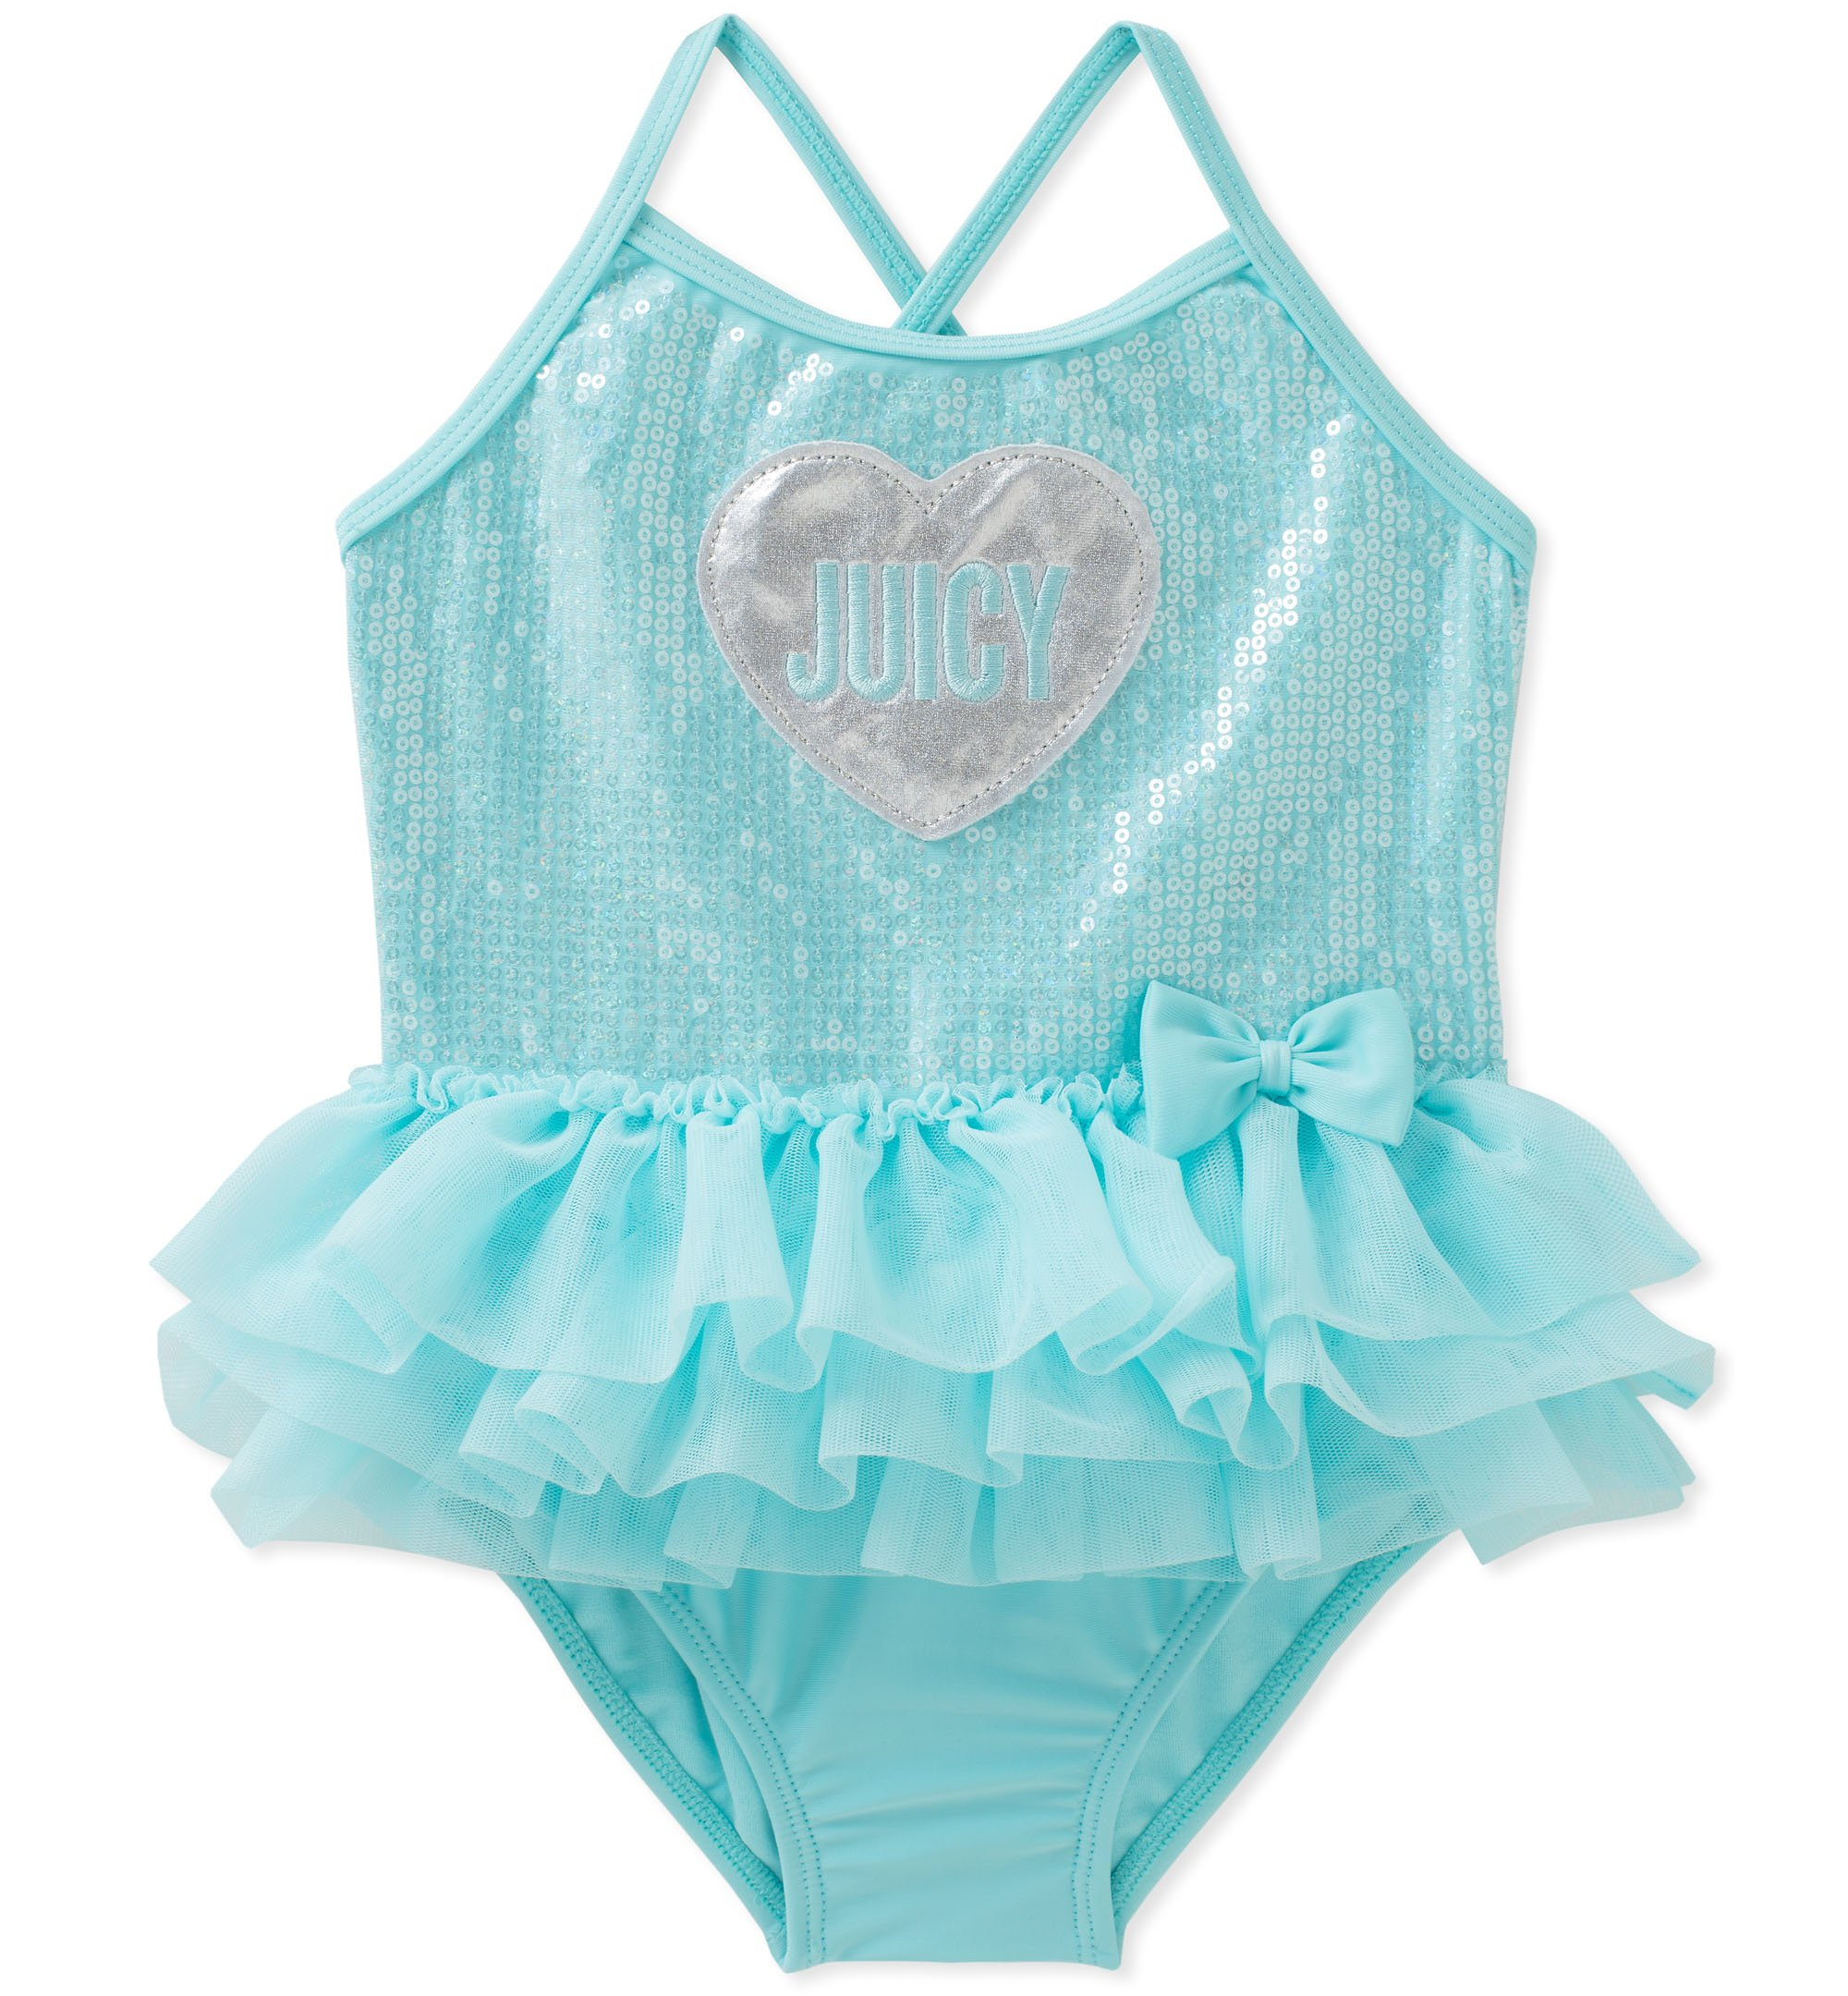 Juicy Couture Girls Swimsuit, Mint, 24M